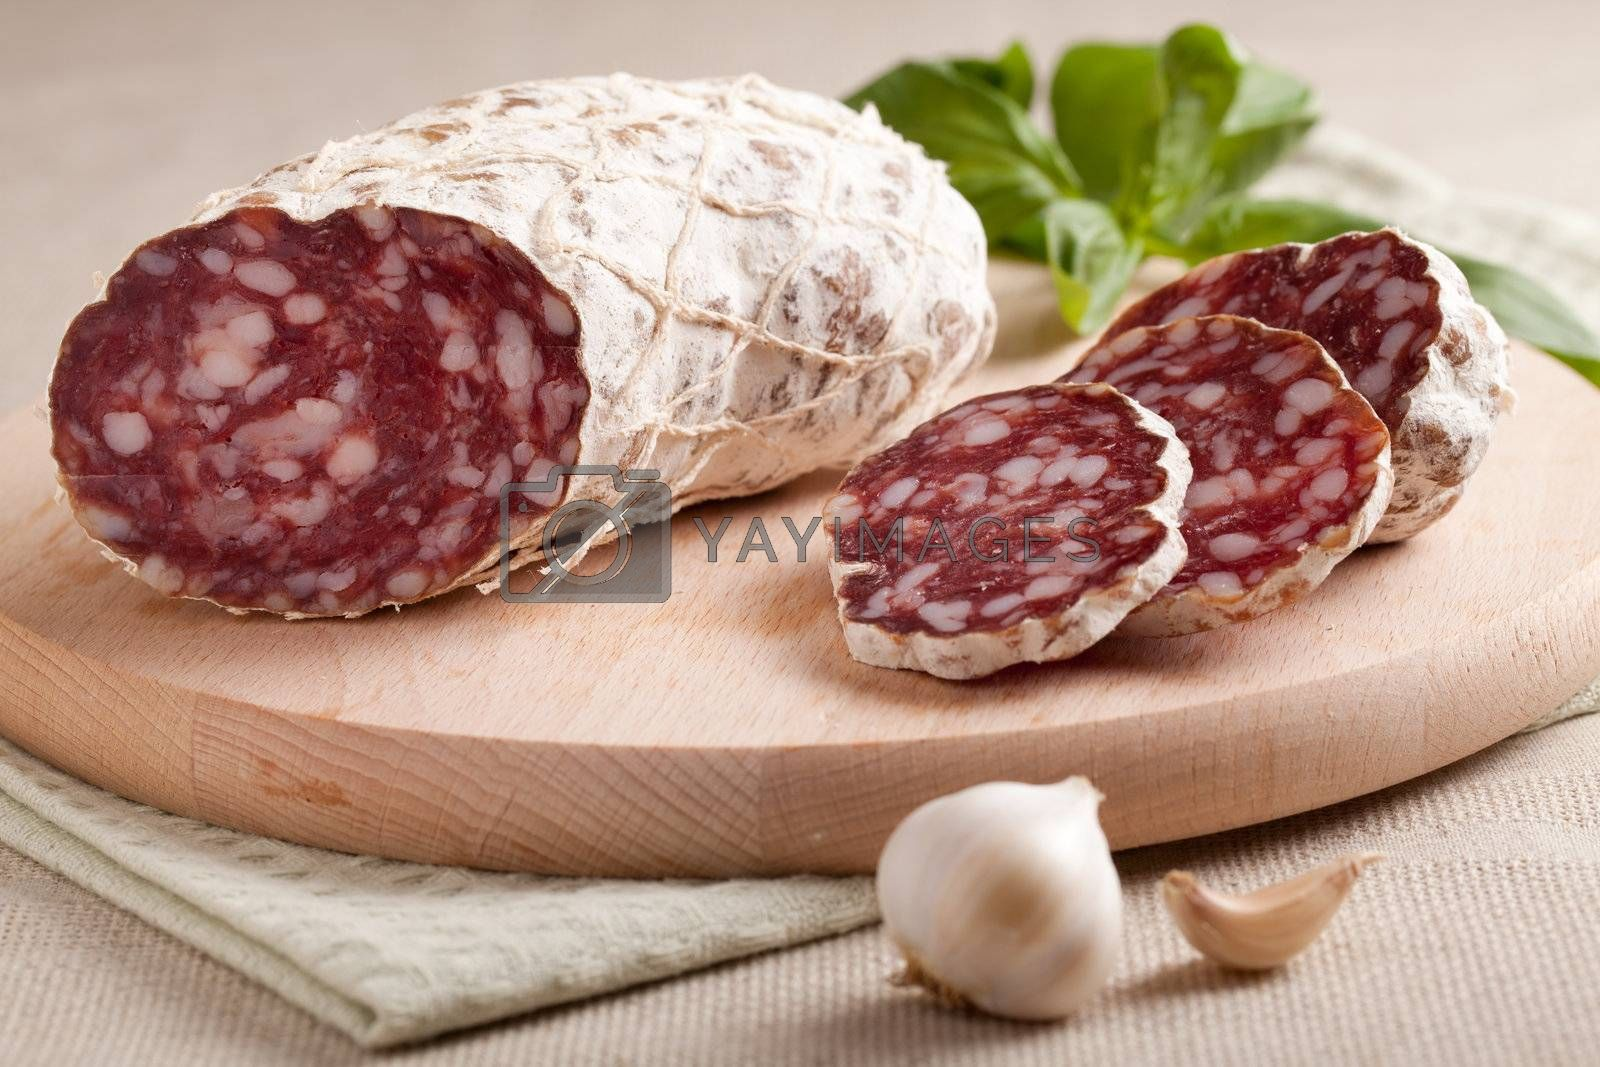 Close-up traditional sliced meat sausage salami on wooden board with head of garlic and green herbs on textile towel